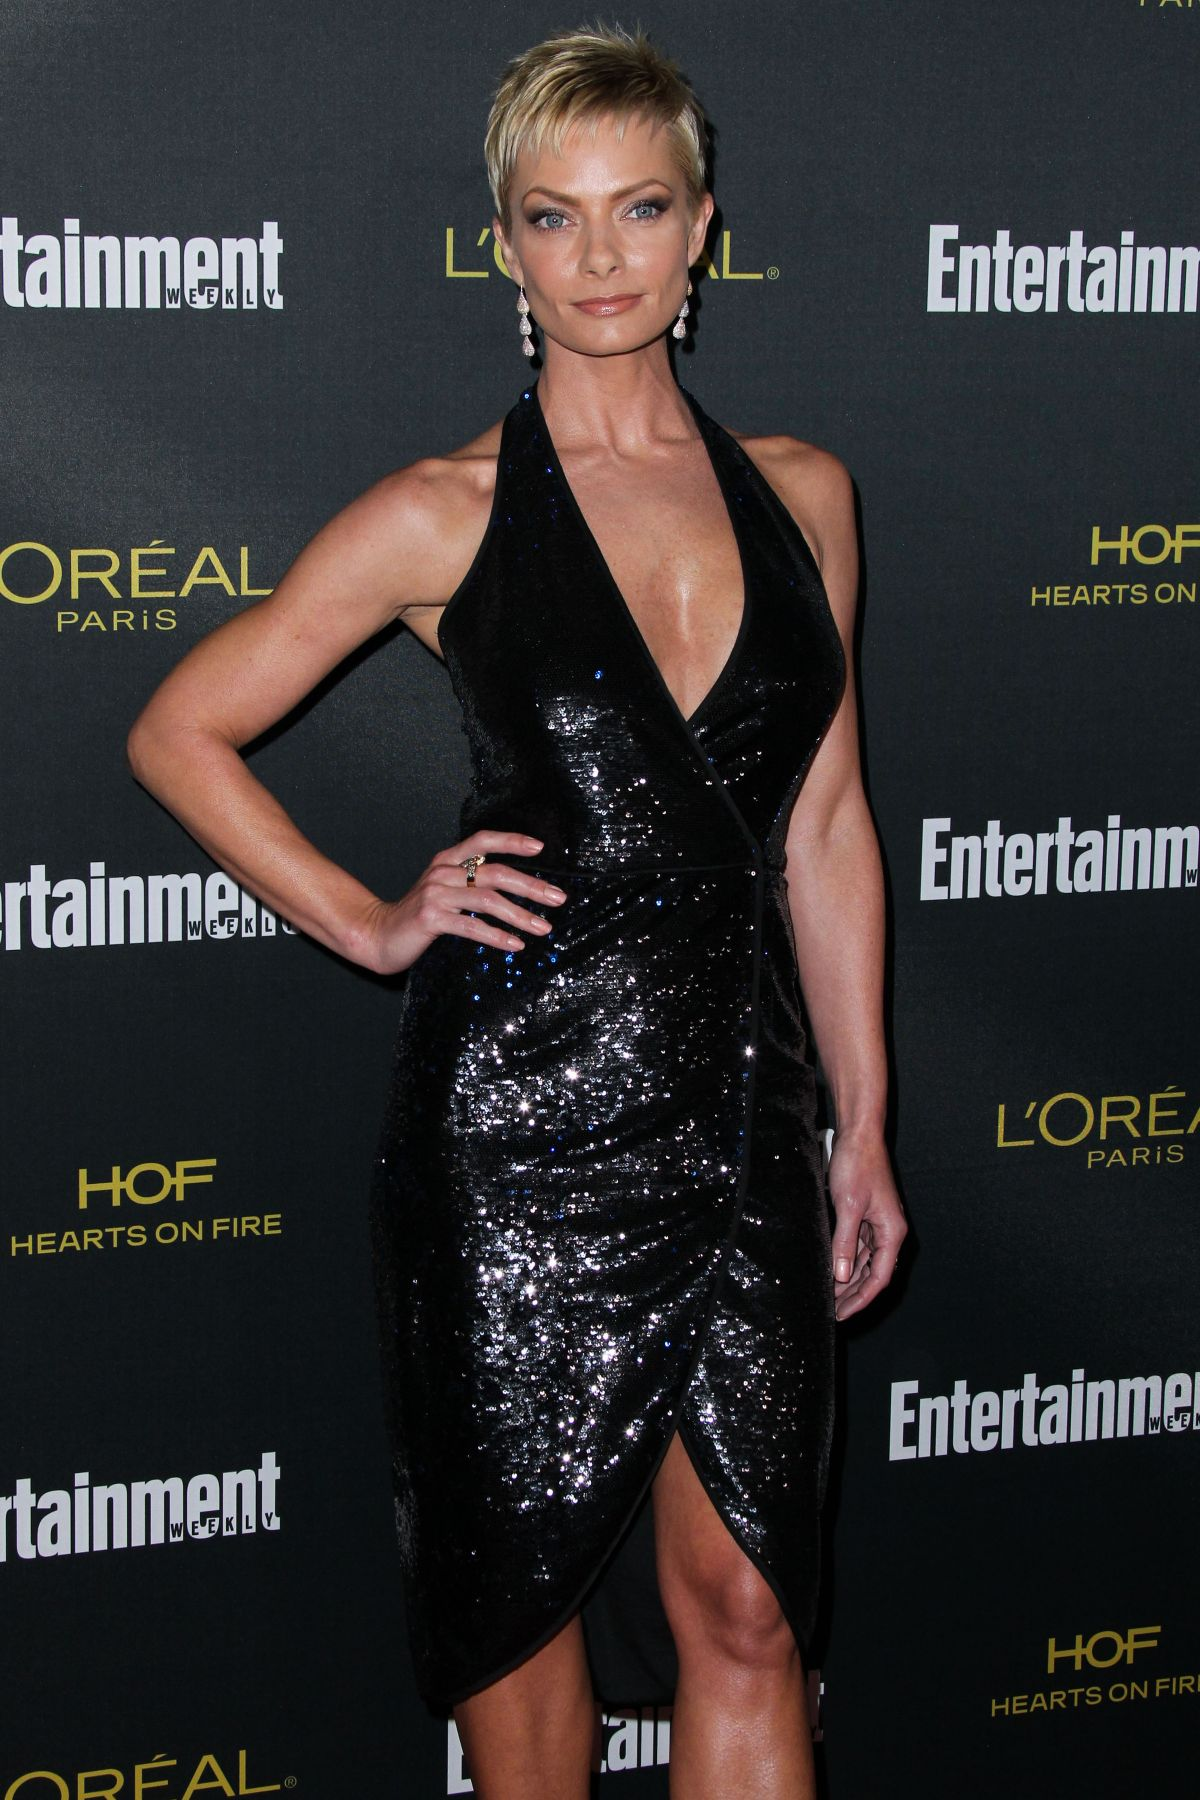 JAIME PRESSLY at Entertainment Weekly's Pre-emmy Party